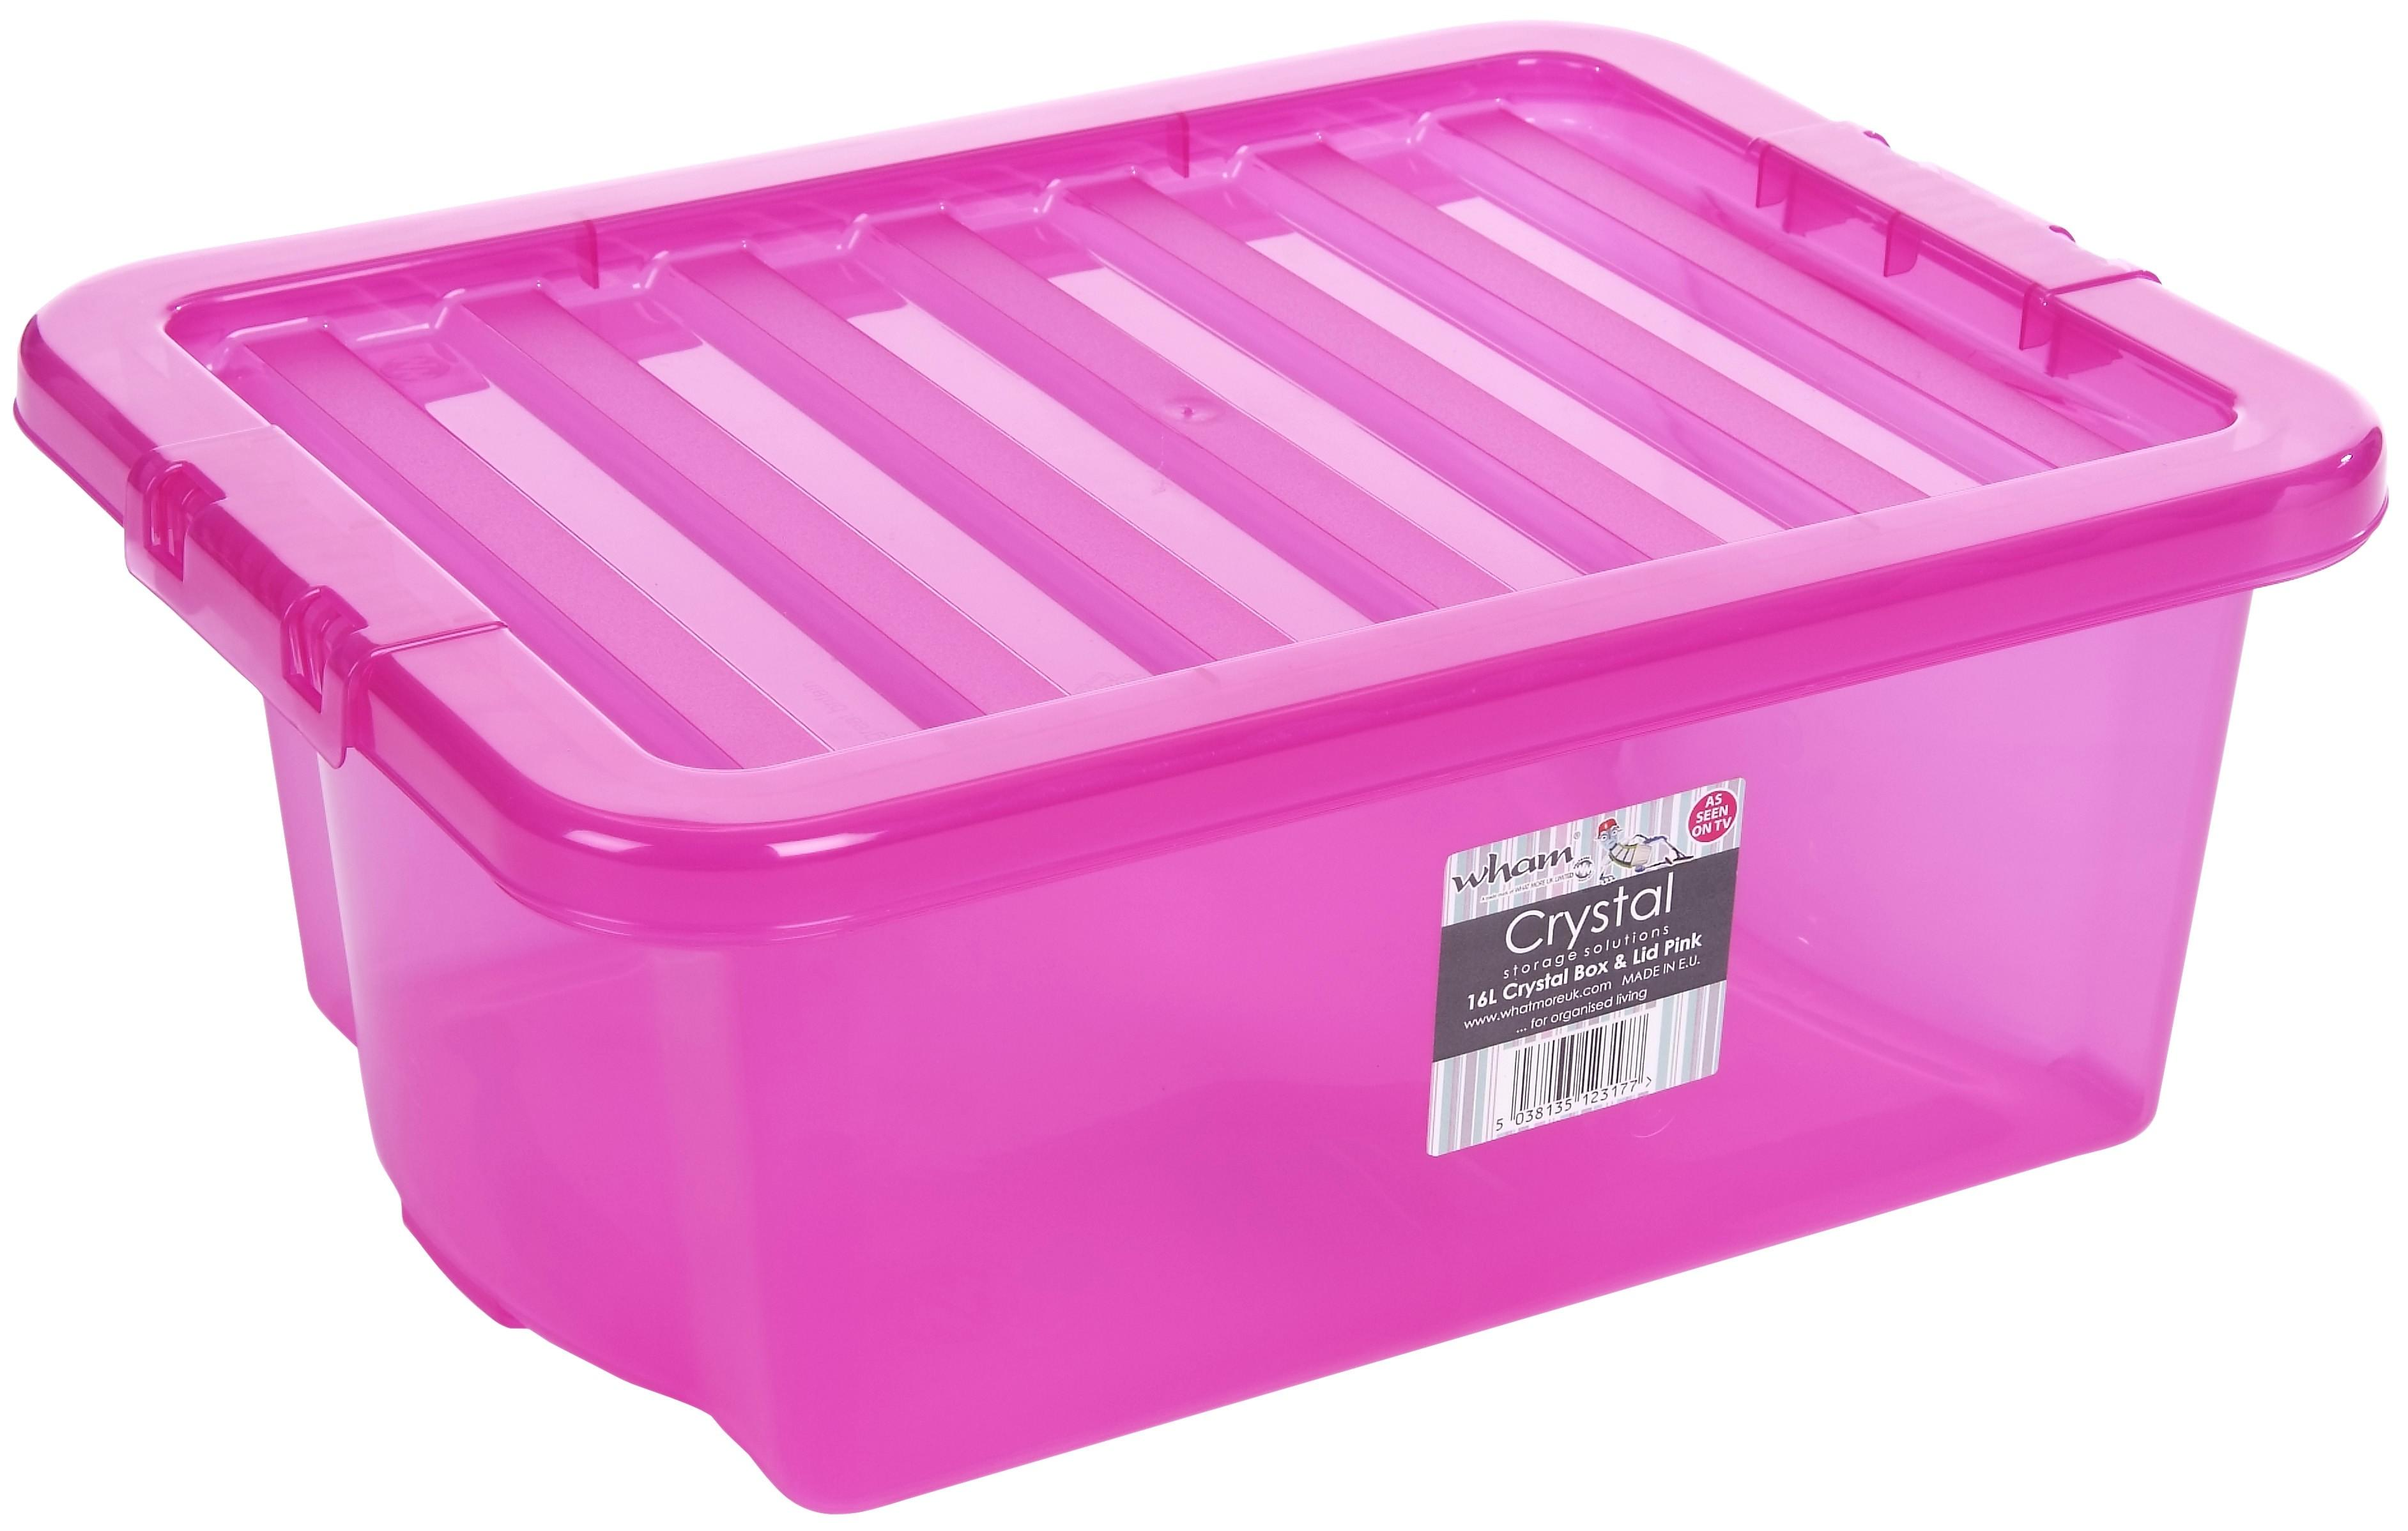 16L Wham Crystal Stacking Plastic Storage Box Pink Clip Lid